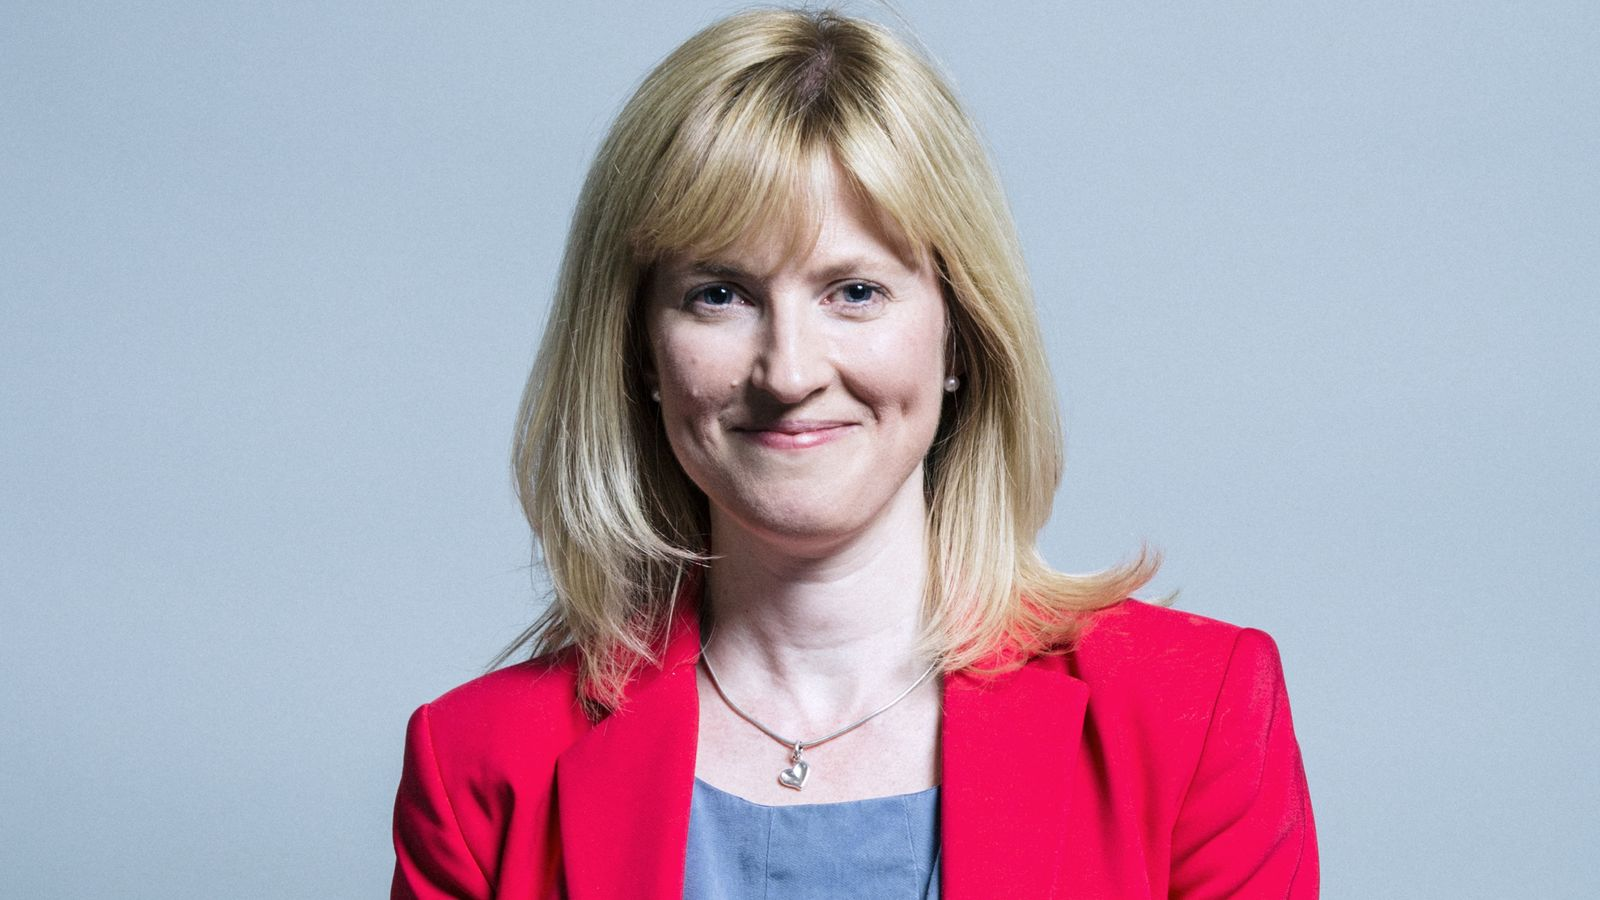 Labour MP Rosie Duffield to skip party's conference 'due to threats' amid calls for end to 'factionalism' and 'intolerance'